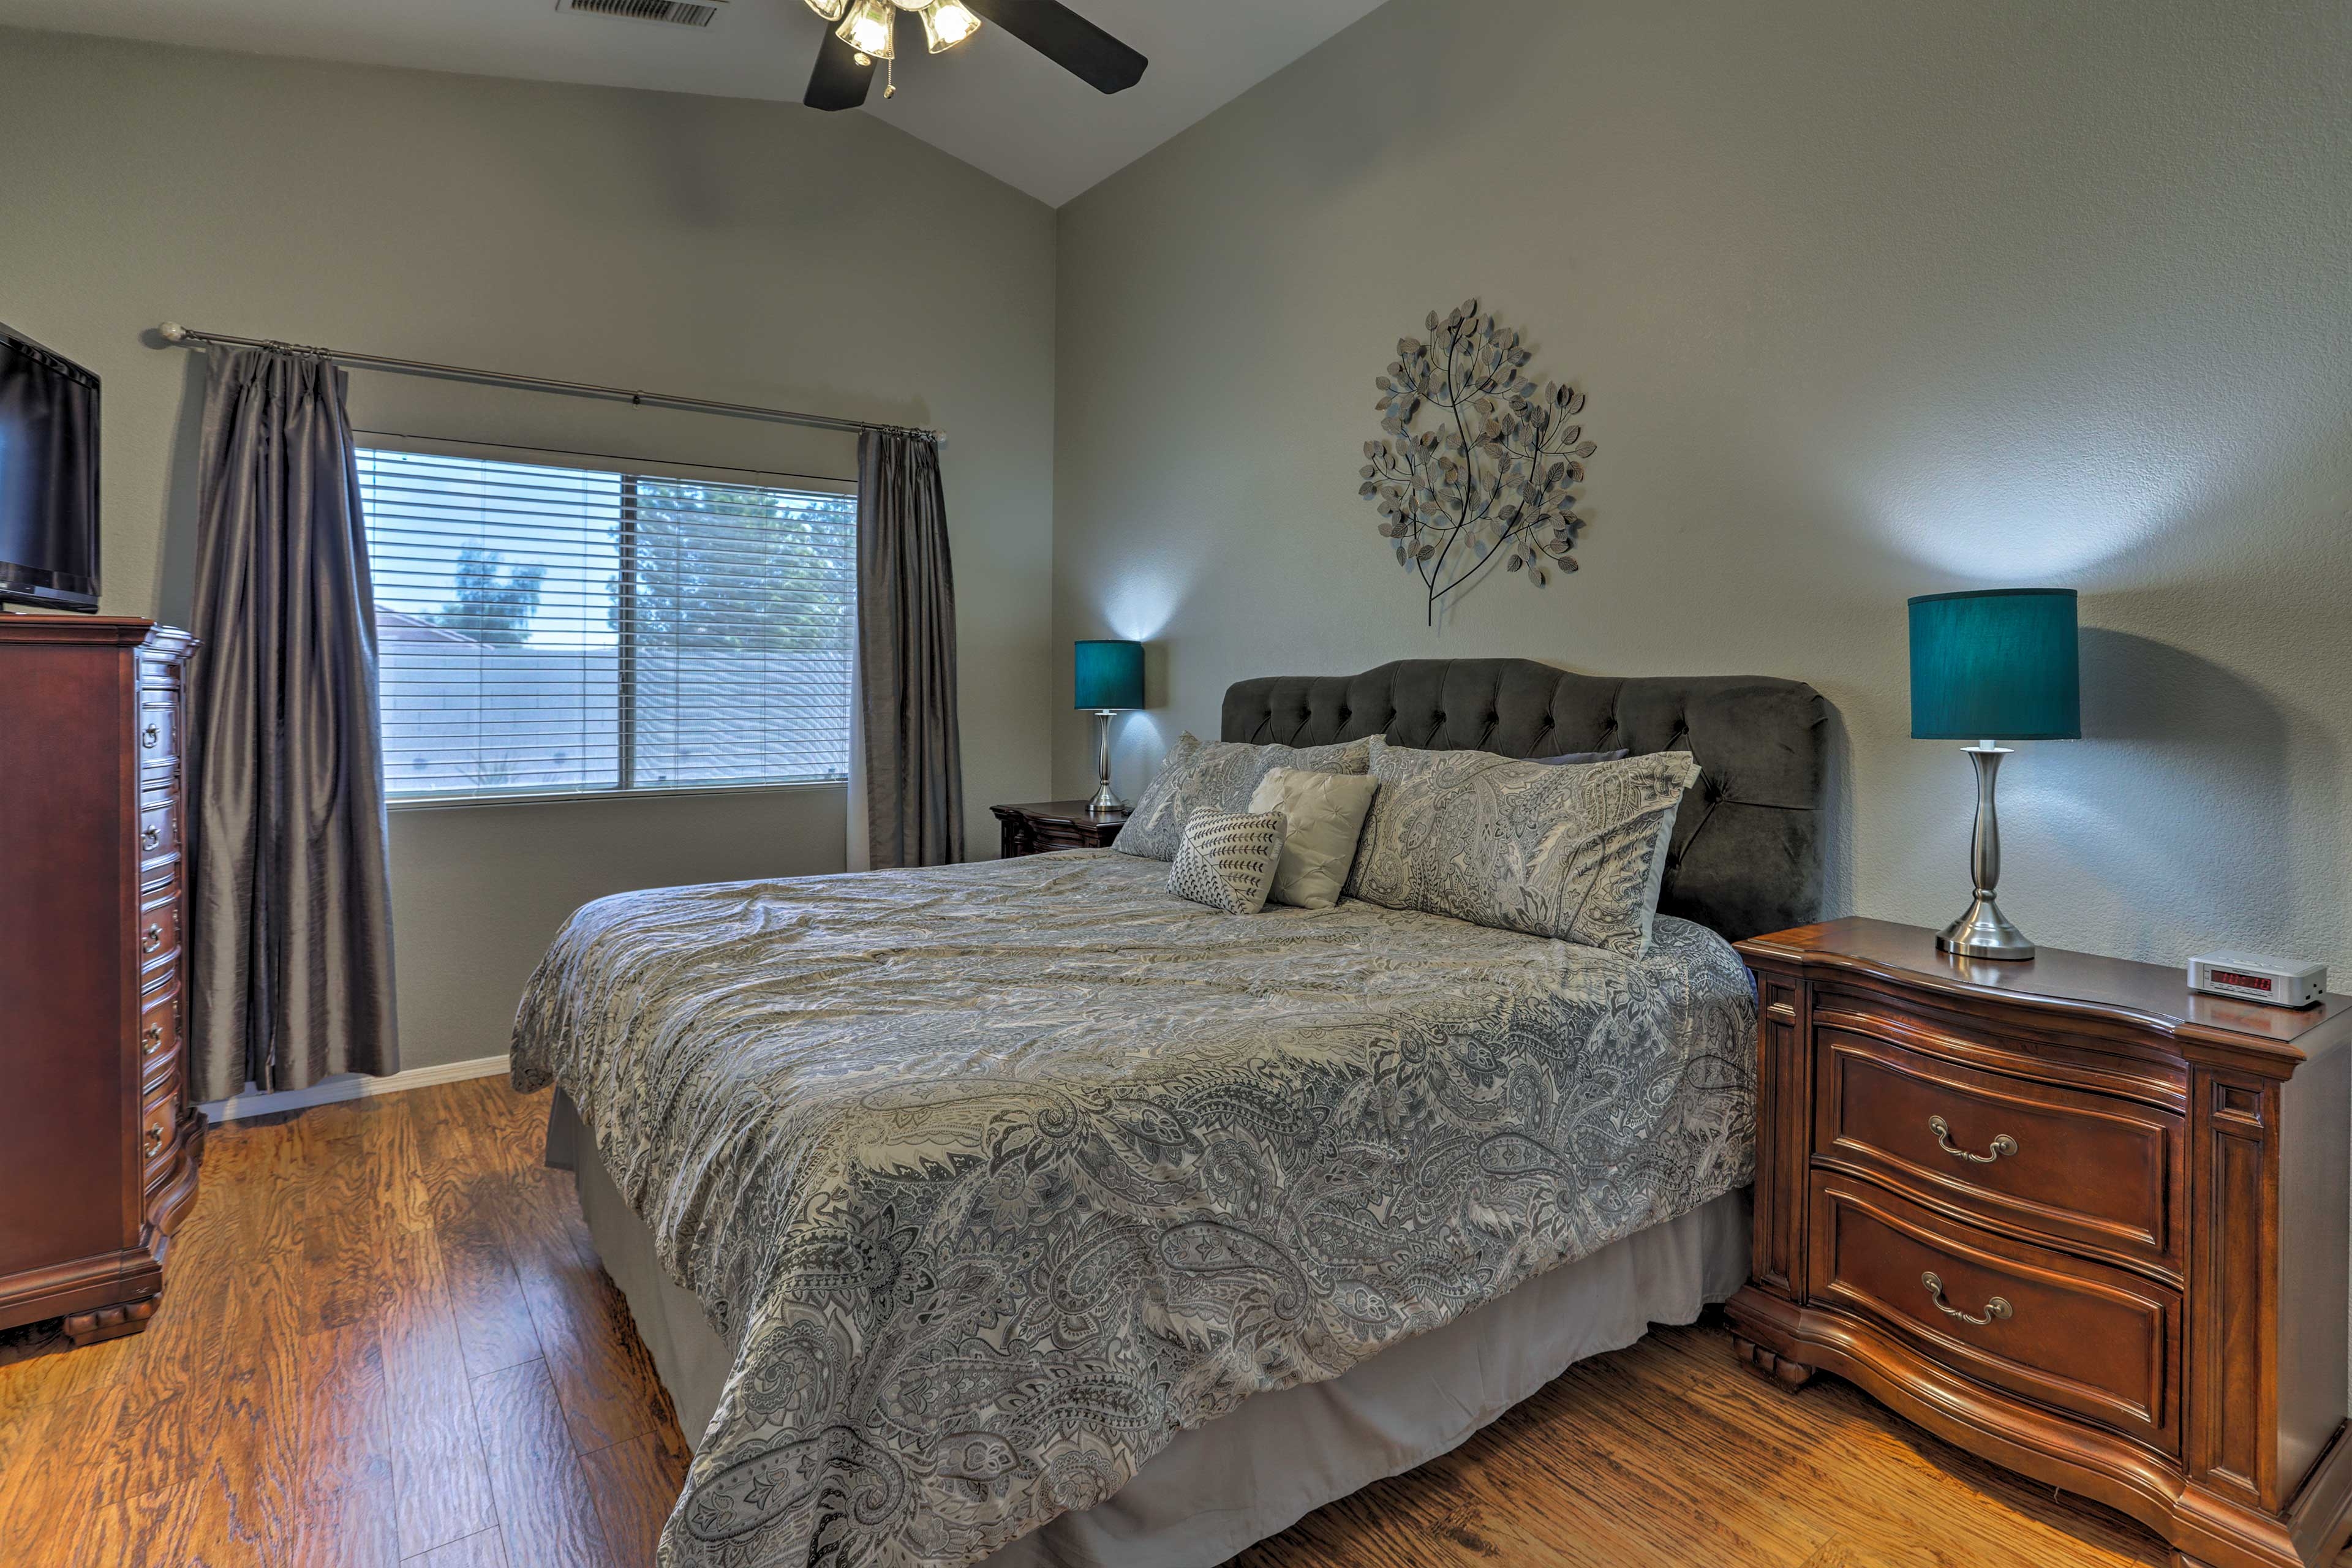 The master bedroom plays host to a king bed.